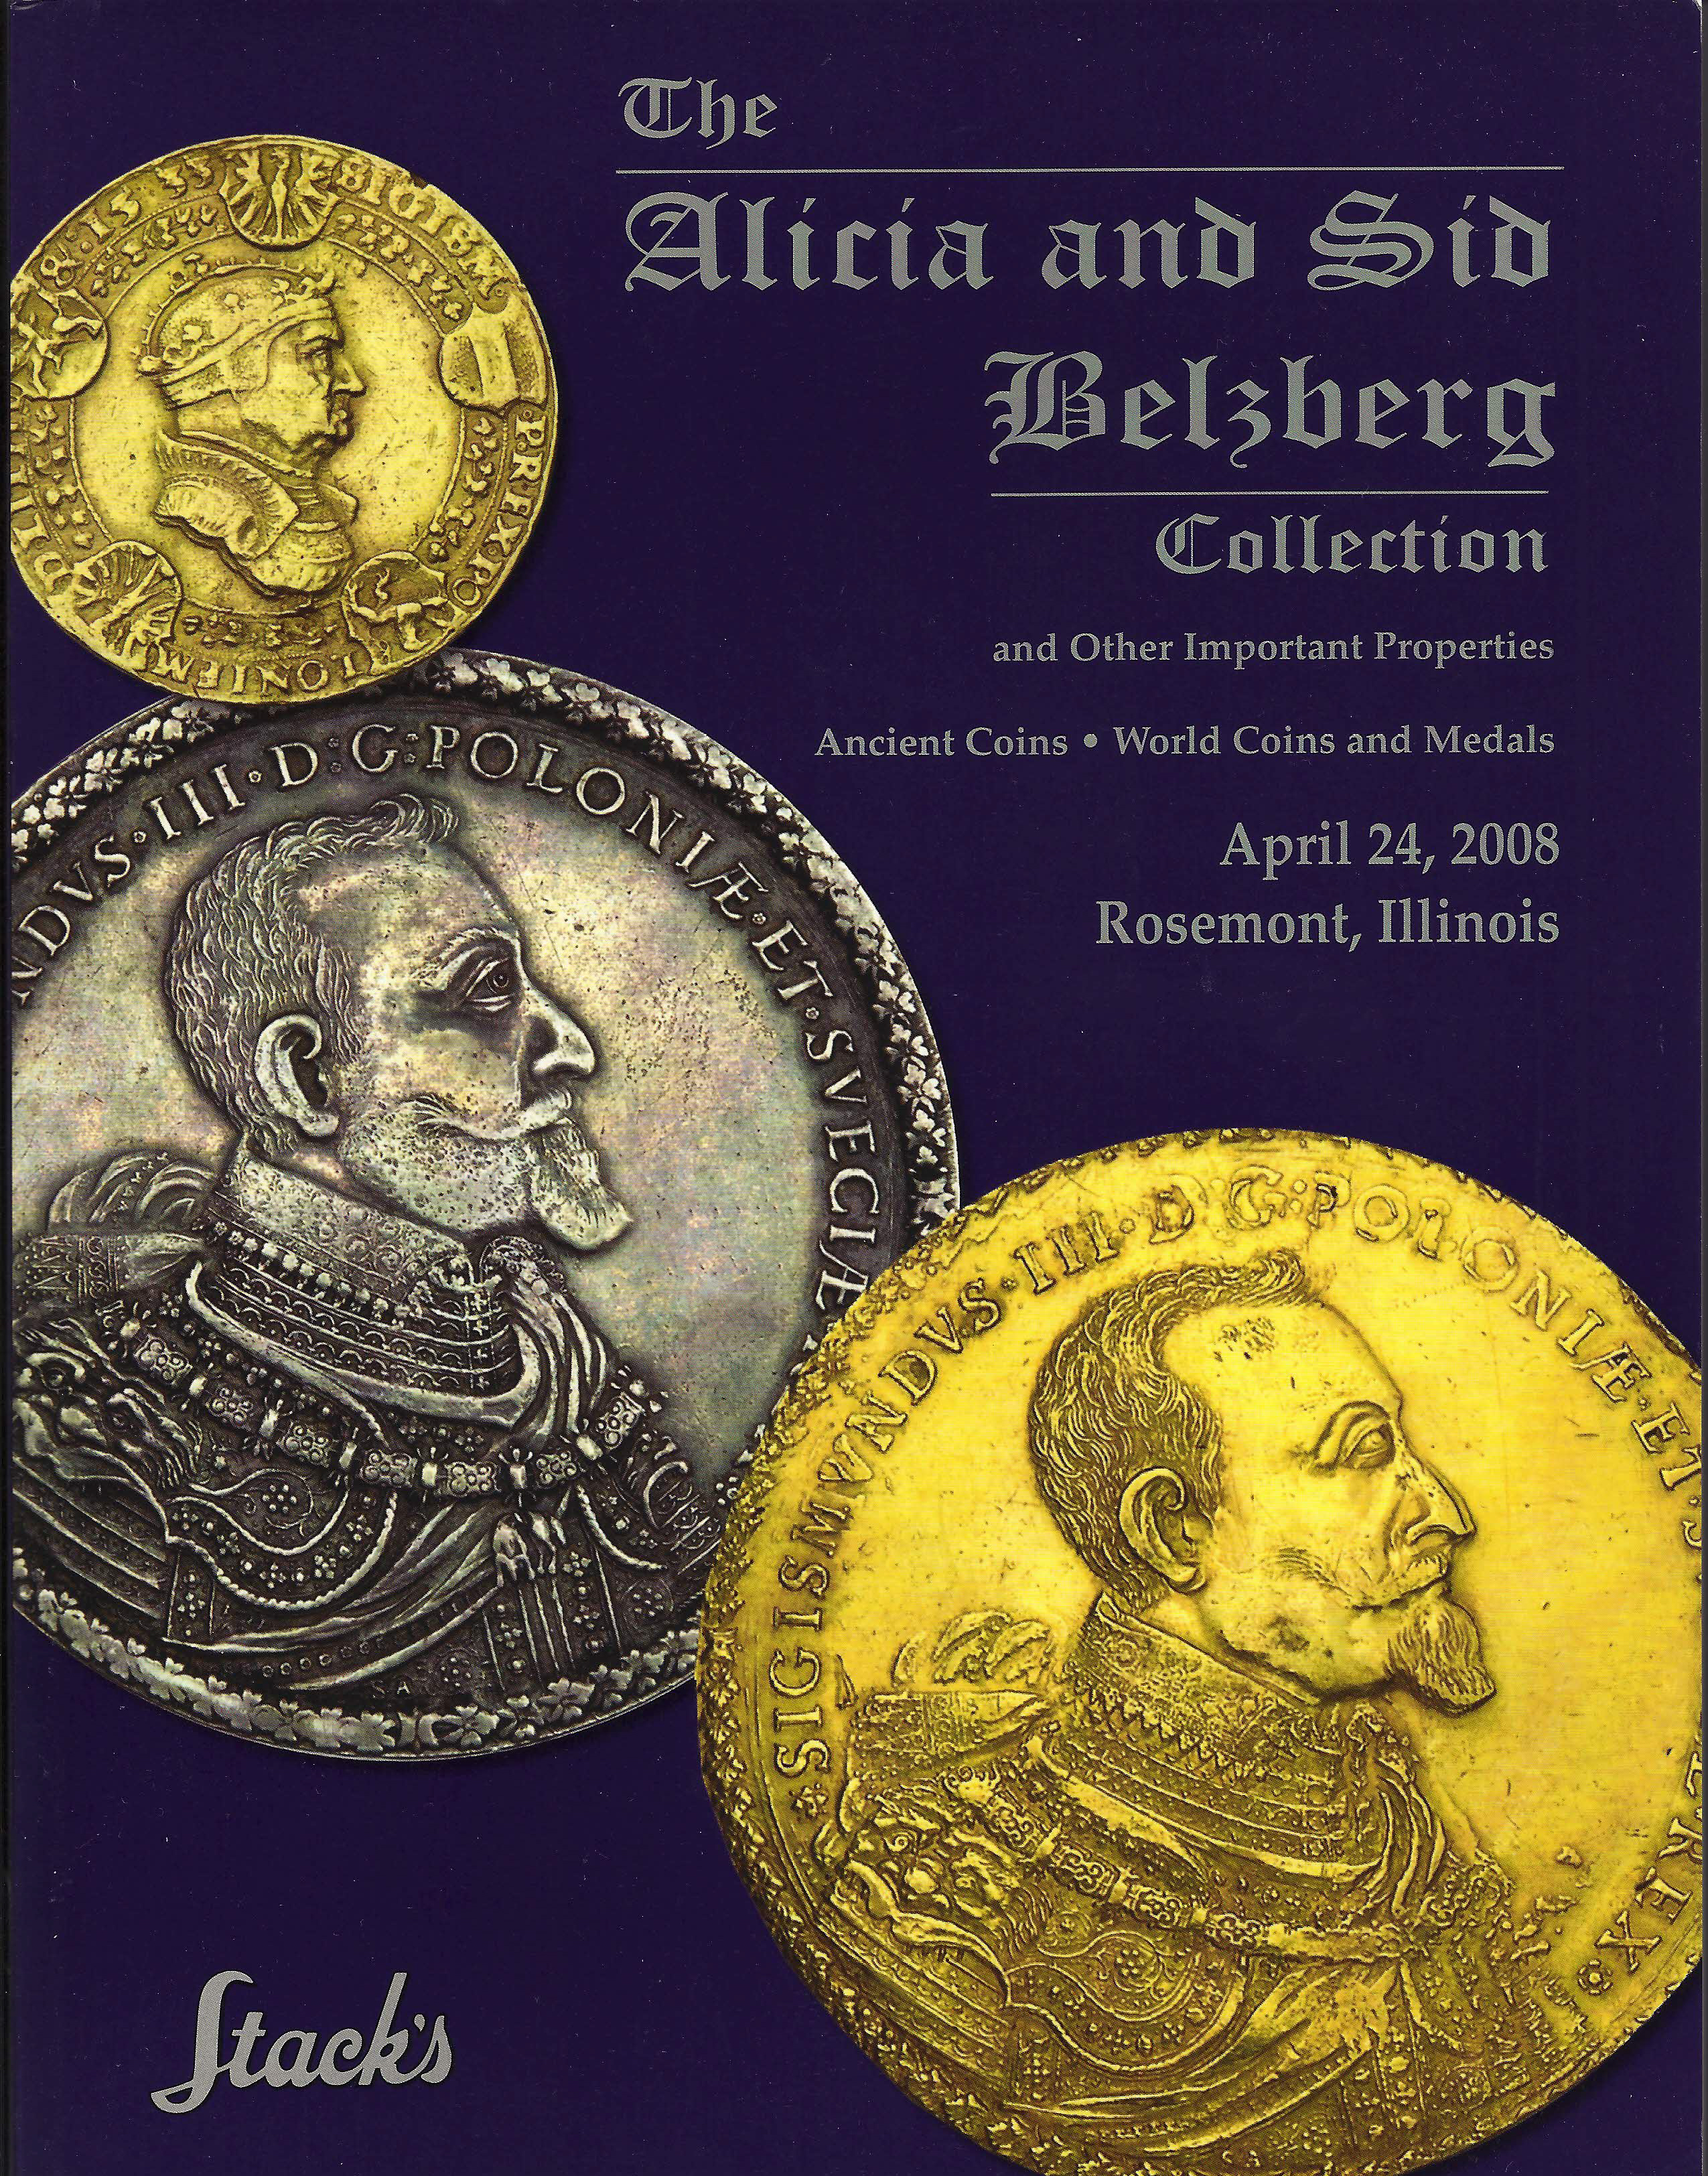 The Alicia and Sid Belzberg Collection and Other Important Properties, Ancient Coins, World Coins and Medals